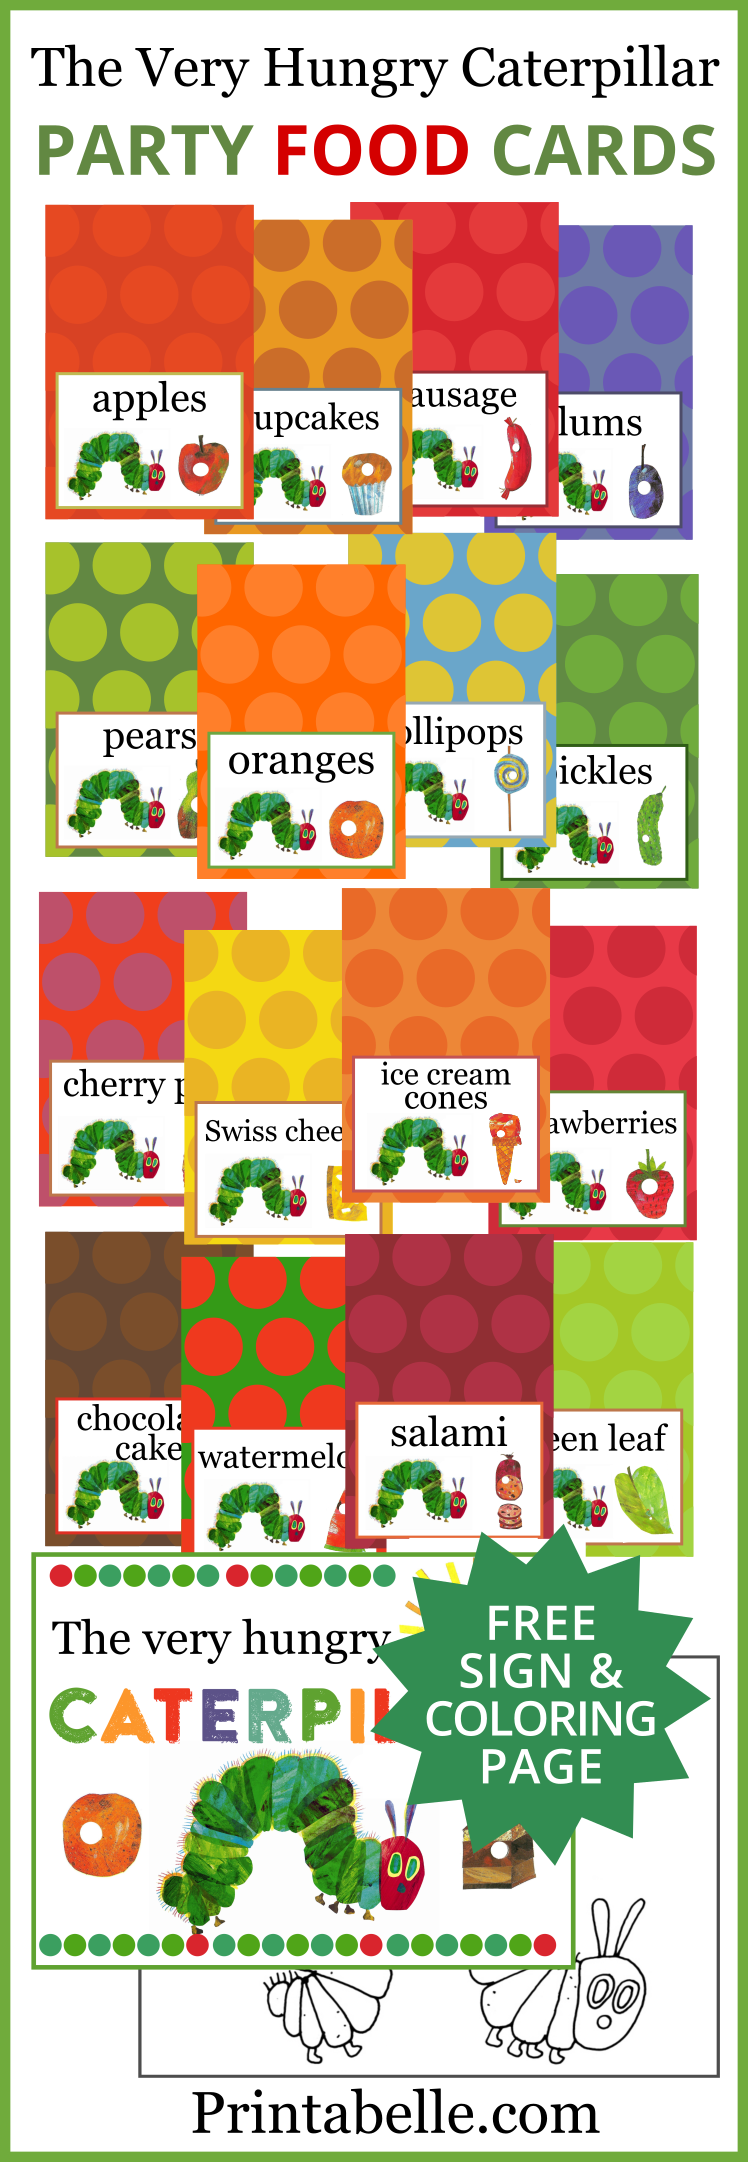 The Very Hungry Caterpillar Food Cards + Free Sign